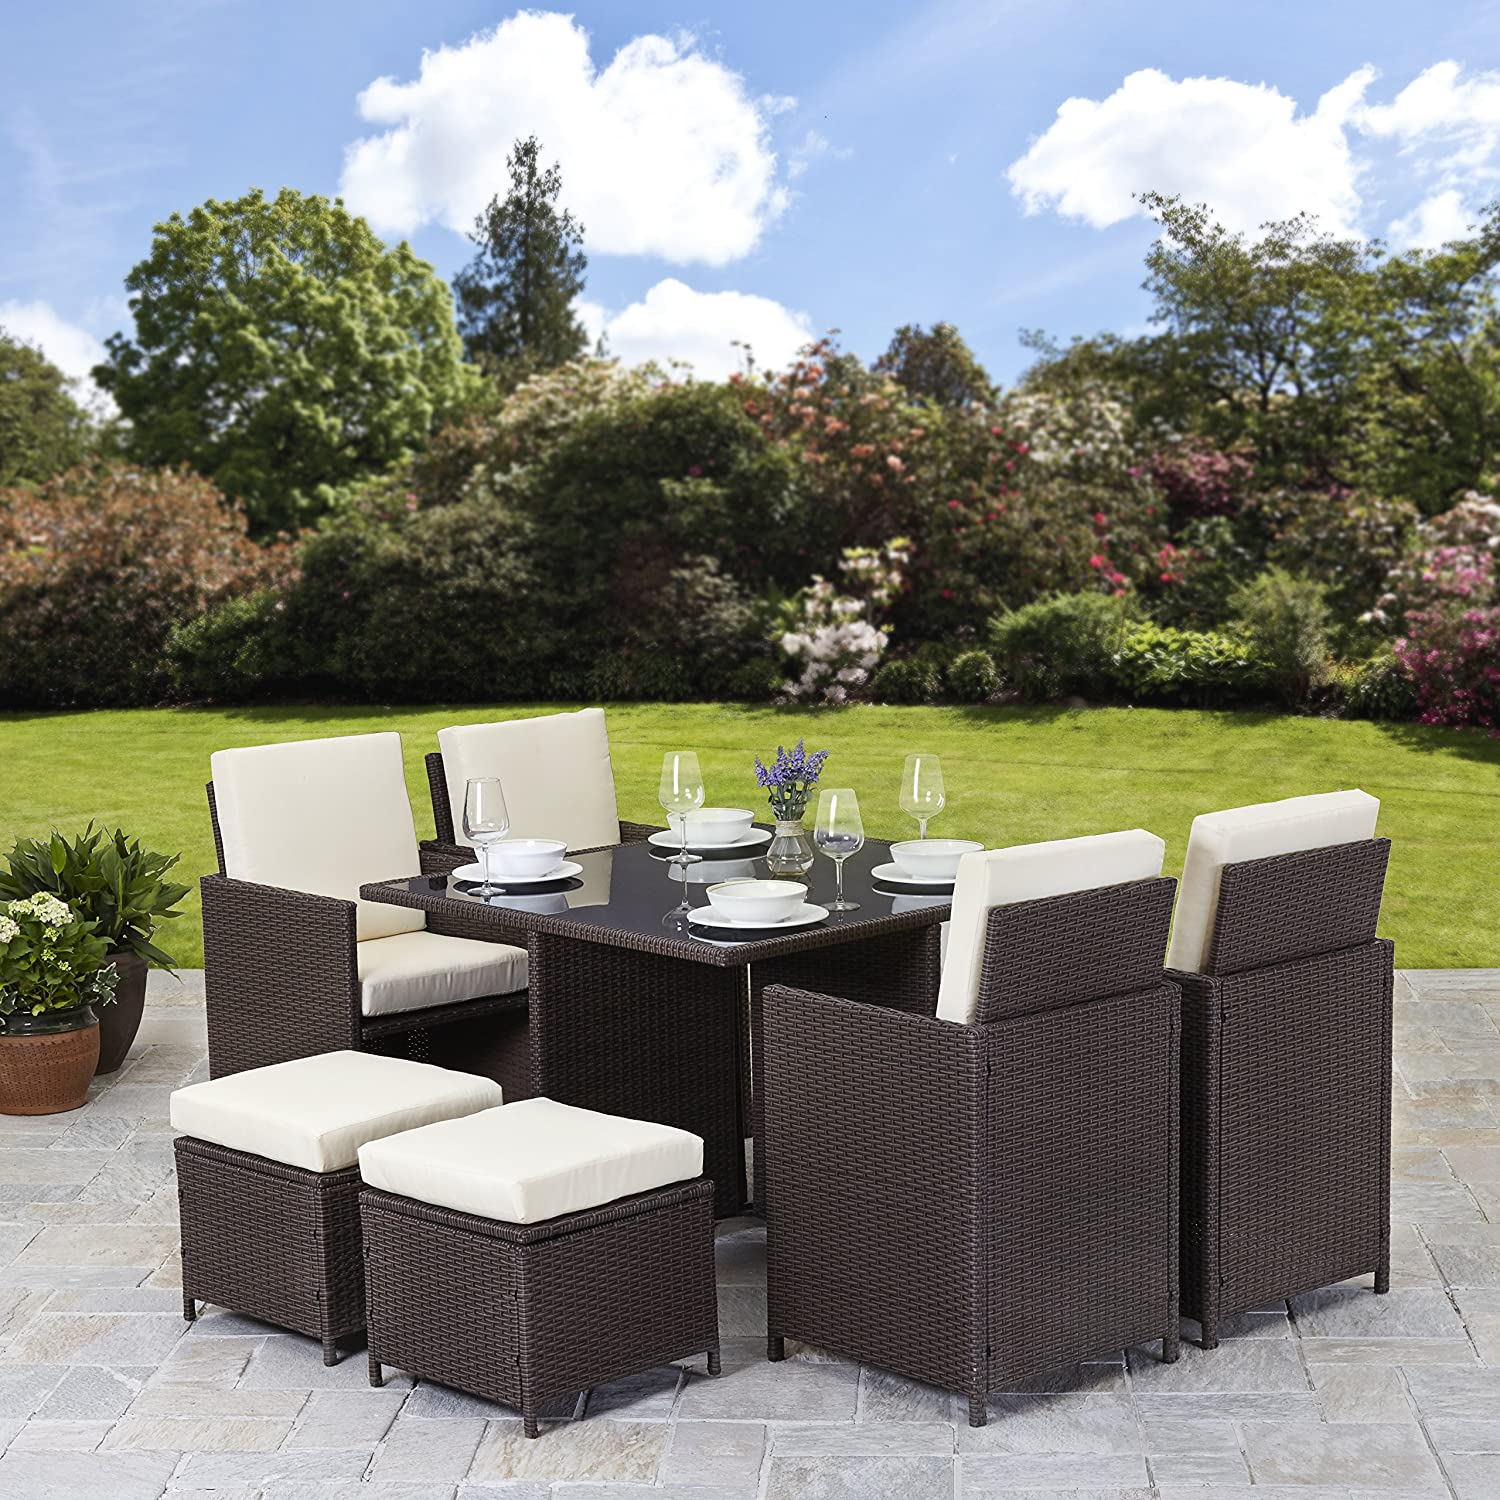 Rattan 4 seater cube table dining garden furniture set for Outdoor wicker furniture